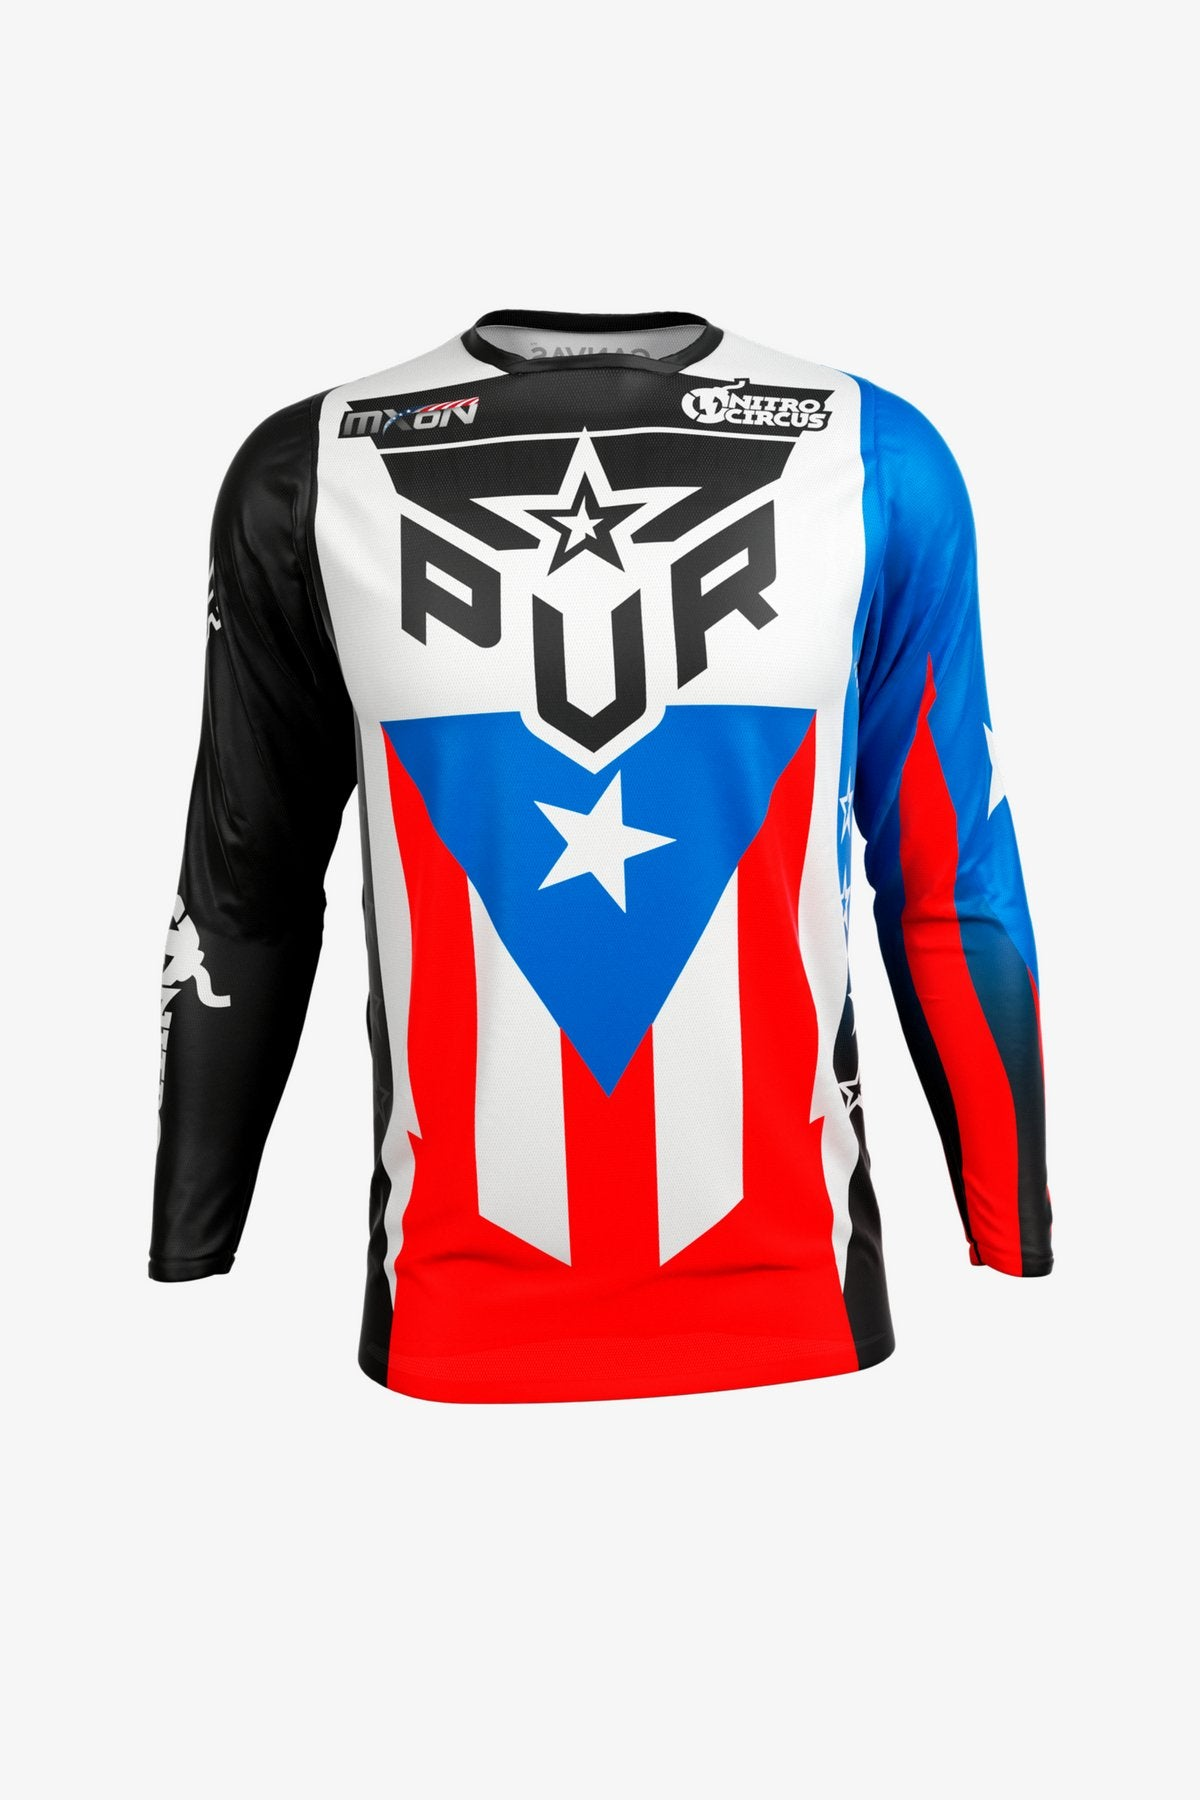 d2f51a81c Nitro Circus | Action Sports Inspired Apparel and Gear